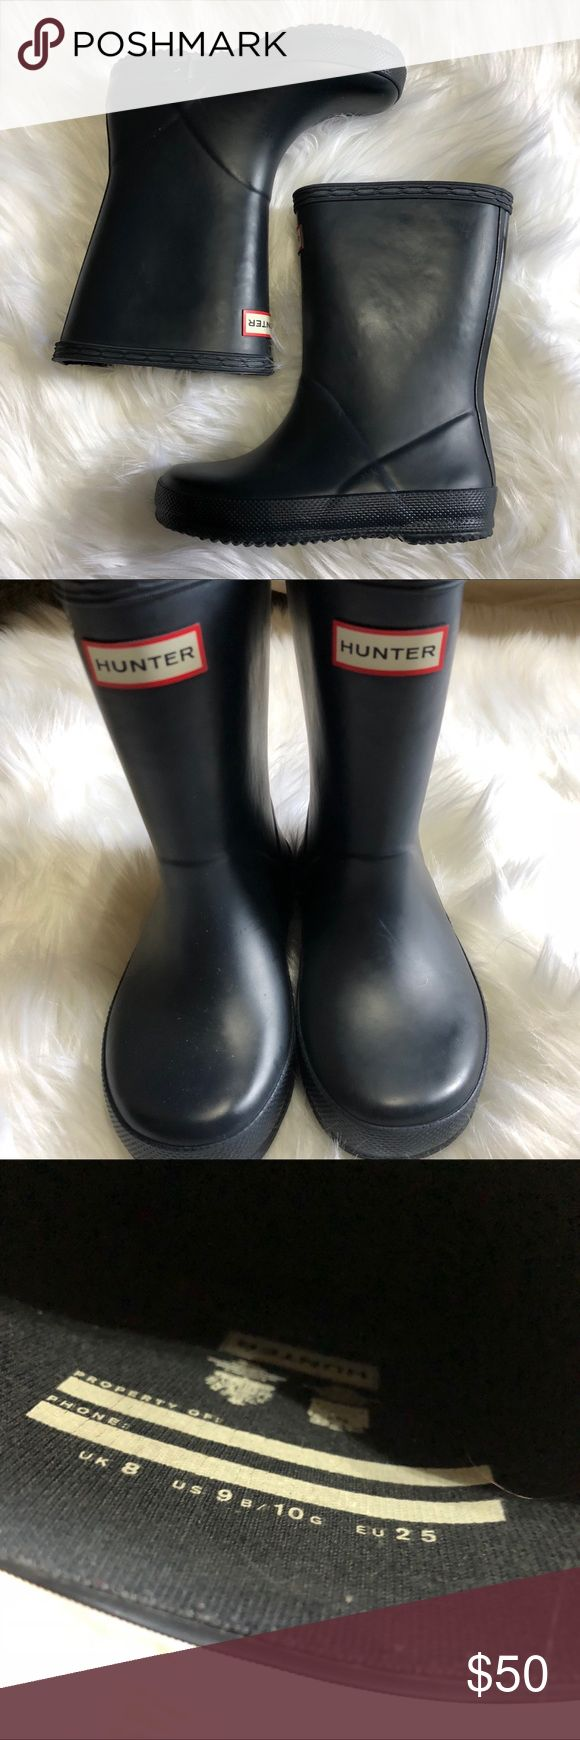 Matte Navy Short Baby Hunter Rain Boot In excellent condition, well taken care of children's Hunter boots. As shown in photos. Heels have slight wear. Hunter Shoes Rain & Snow Boots #babyrainboots